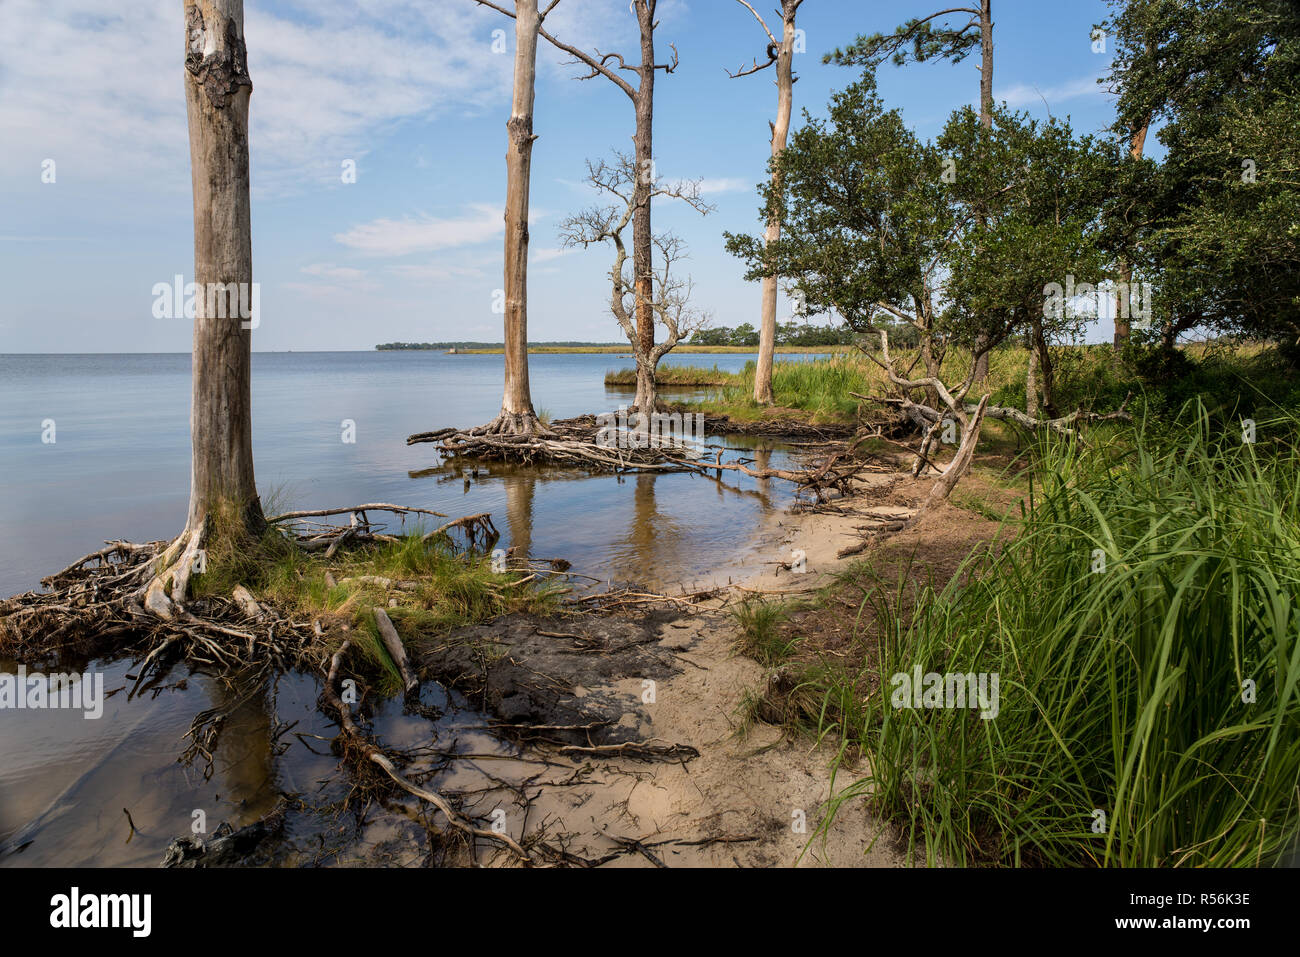 Dead loblolly pines (Pinus taeda) in the Nags Head Woods Preserve along the coast of Roanoke Sound in North Carolina. Rising sea levels, due at least  - Stock Image